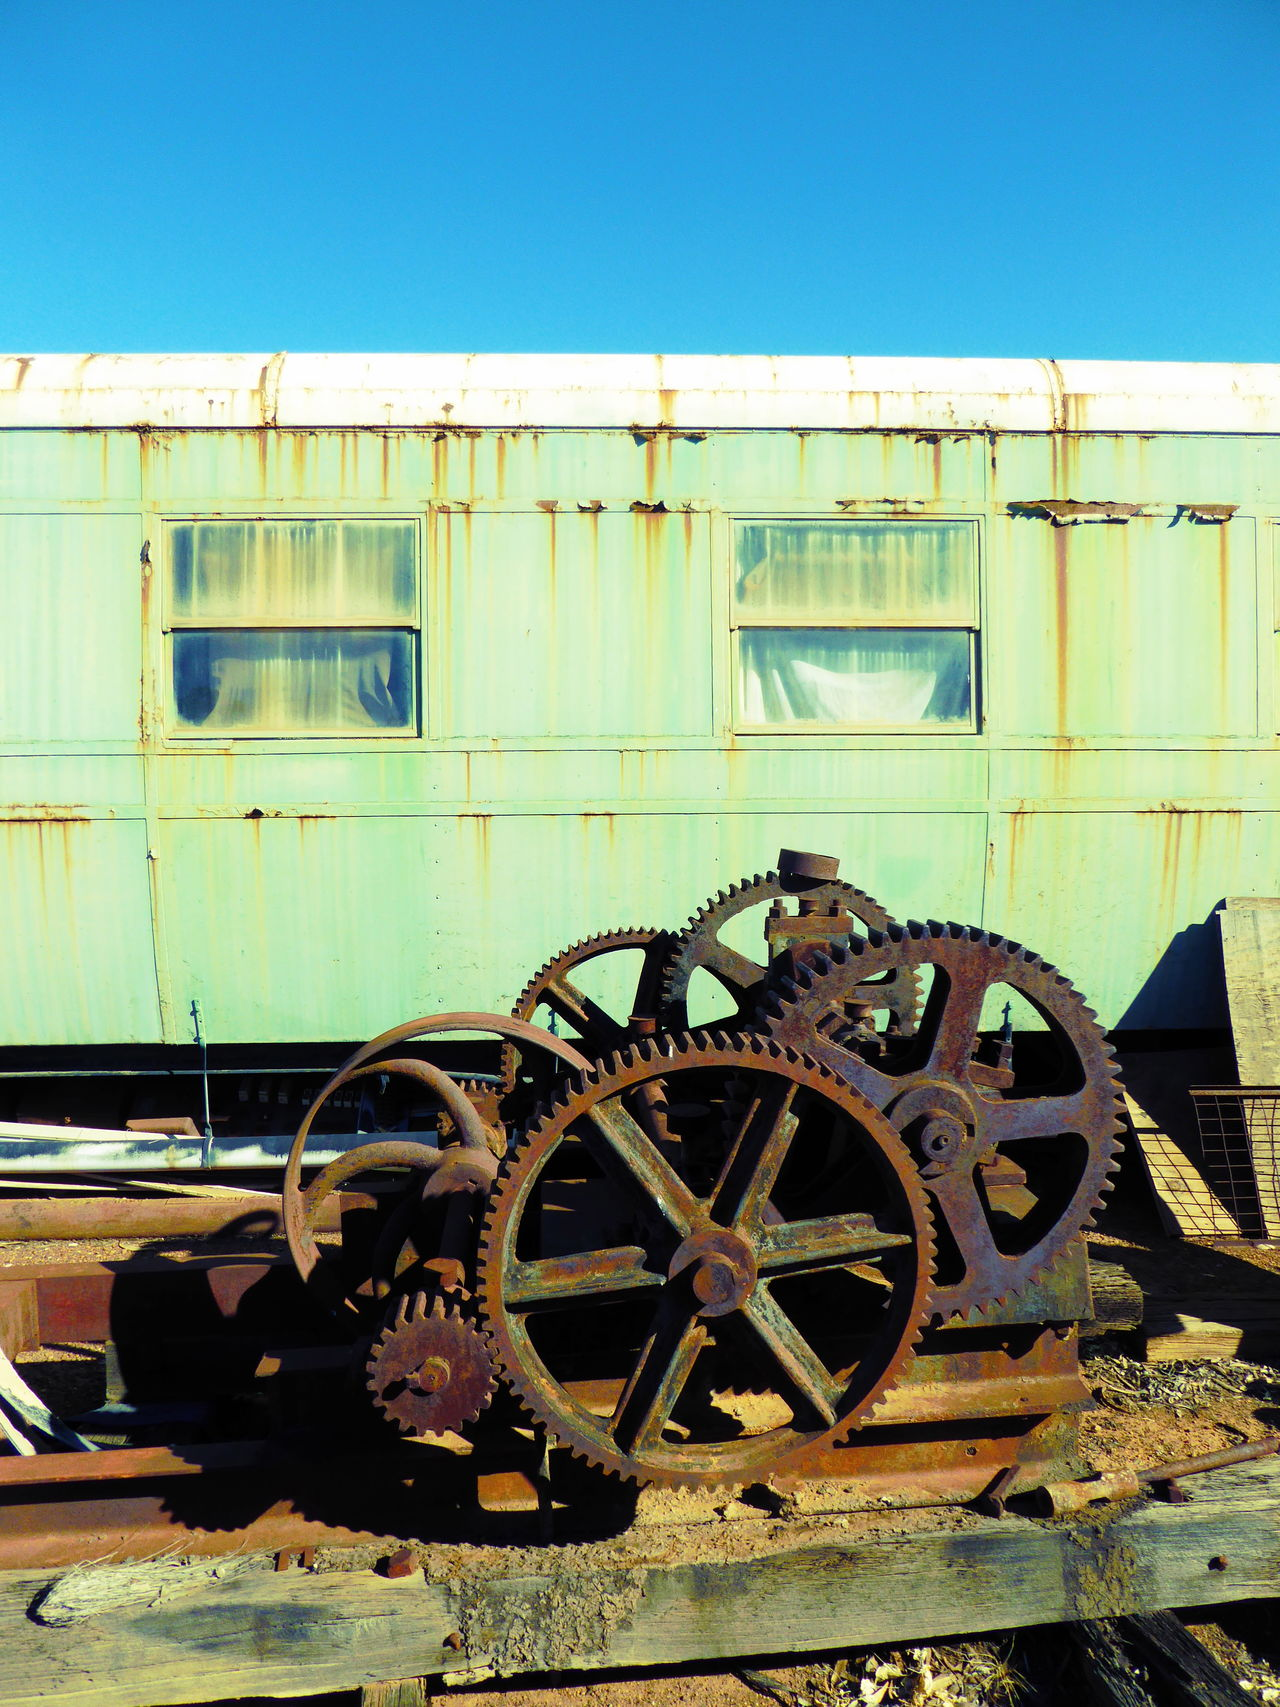 Abandoned Clear Sky Damaged Day Derelict Railway Carrige Junk Sculptures Junkyard Metal Junk Mode Of Transport No People Obsolete Old Railway Carriage Old-fashioned Outdoors Rail Transportation Railways Rusty Metal Rusty Metal Junk Sky Train - Vehicle Transportation Weathered Wheels